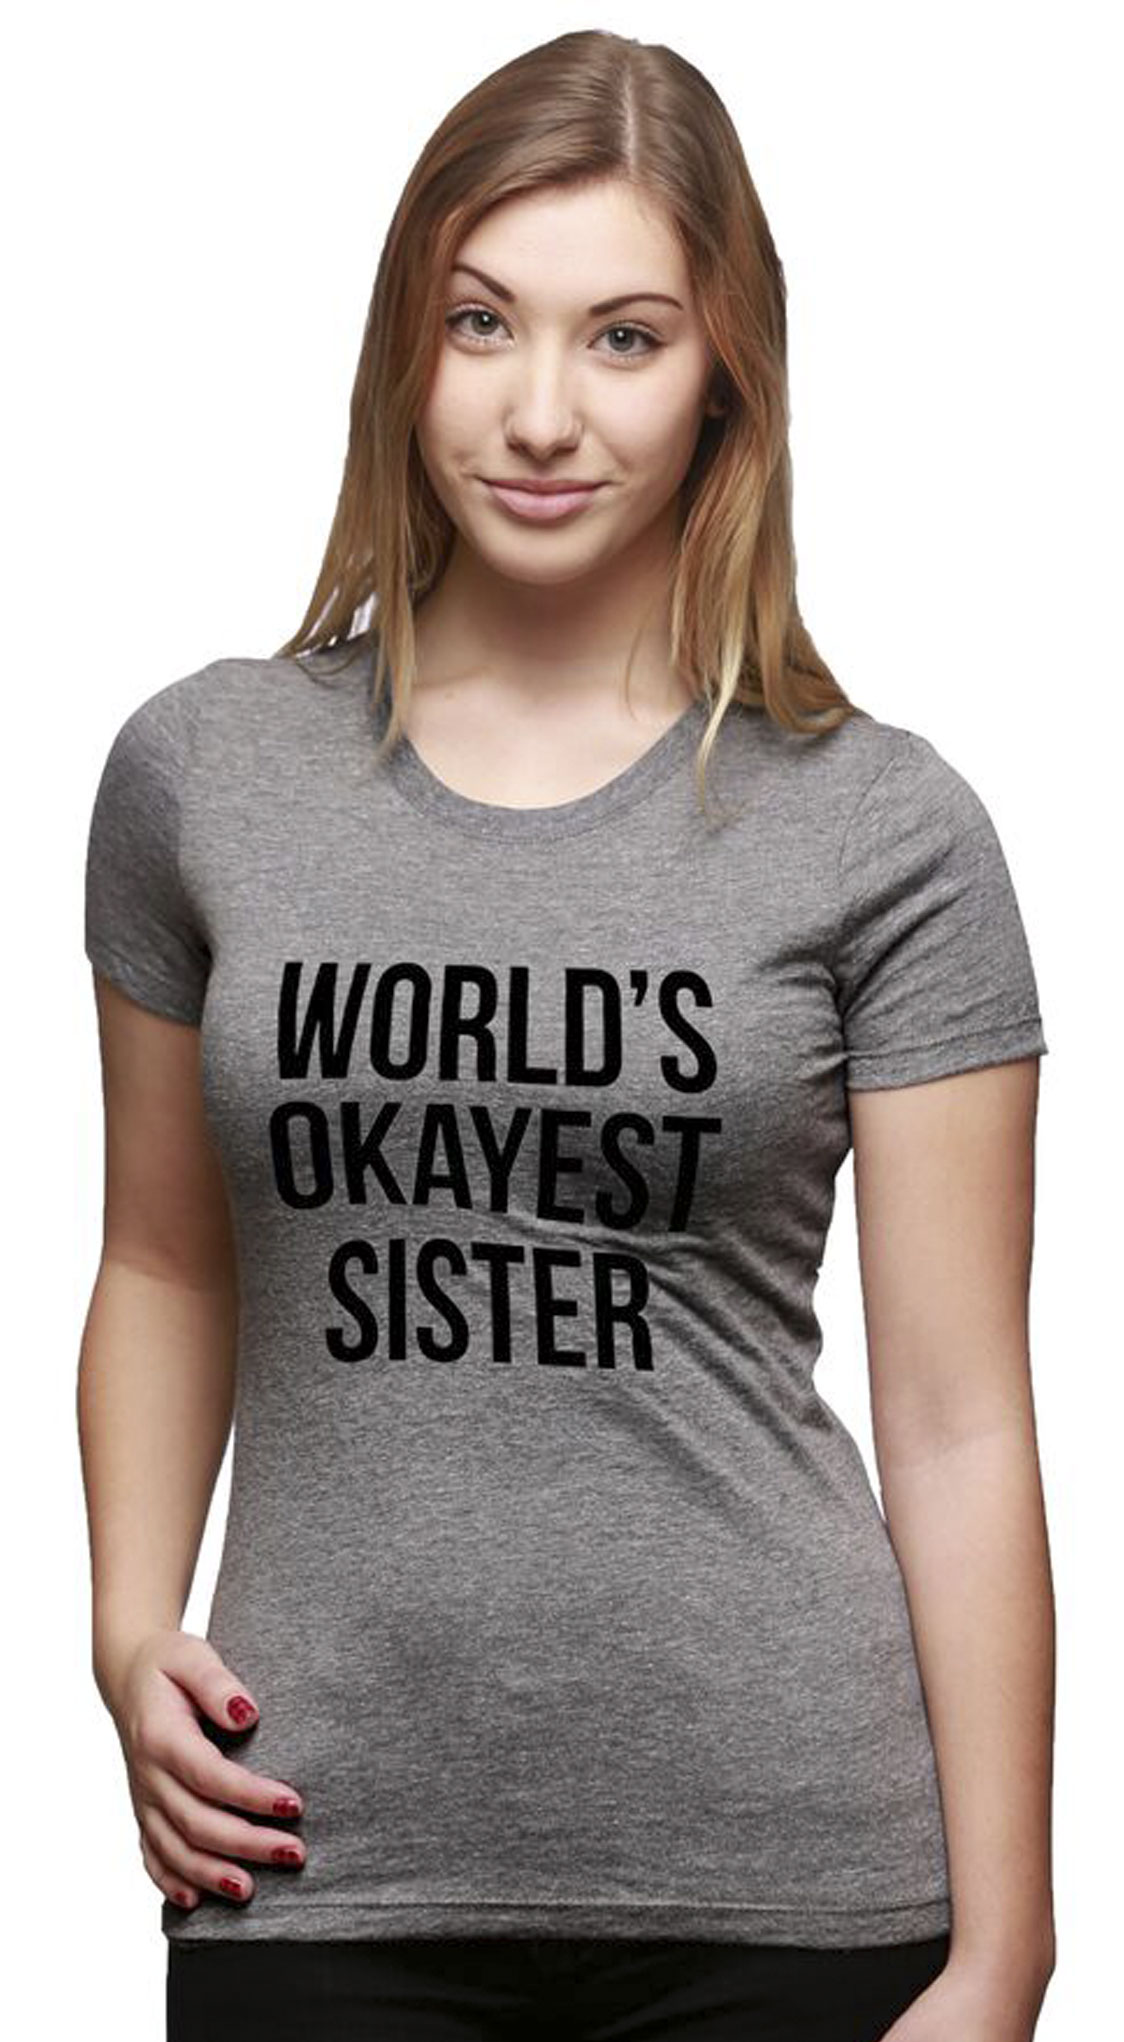 f91d1d92d3 Womens world's okayest sister t shirt funny sarcastic siblings tee for  ladies